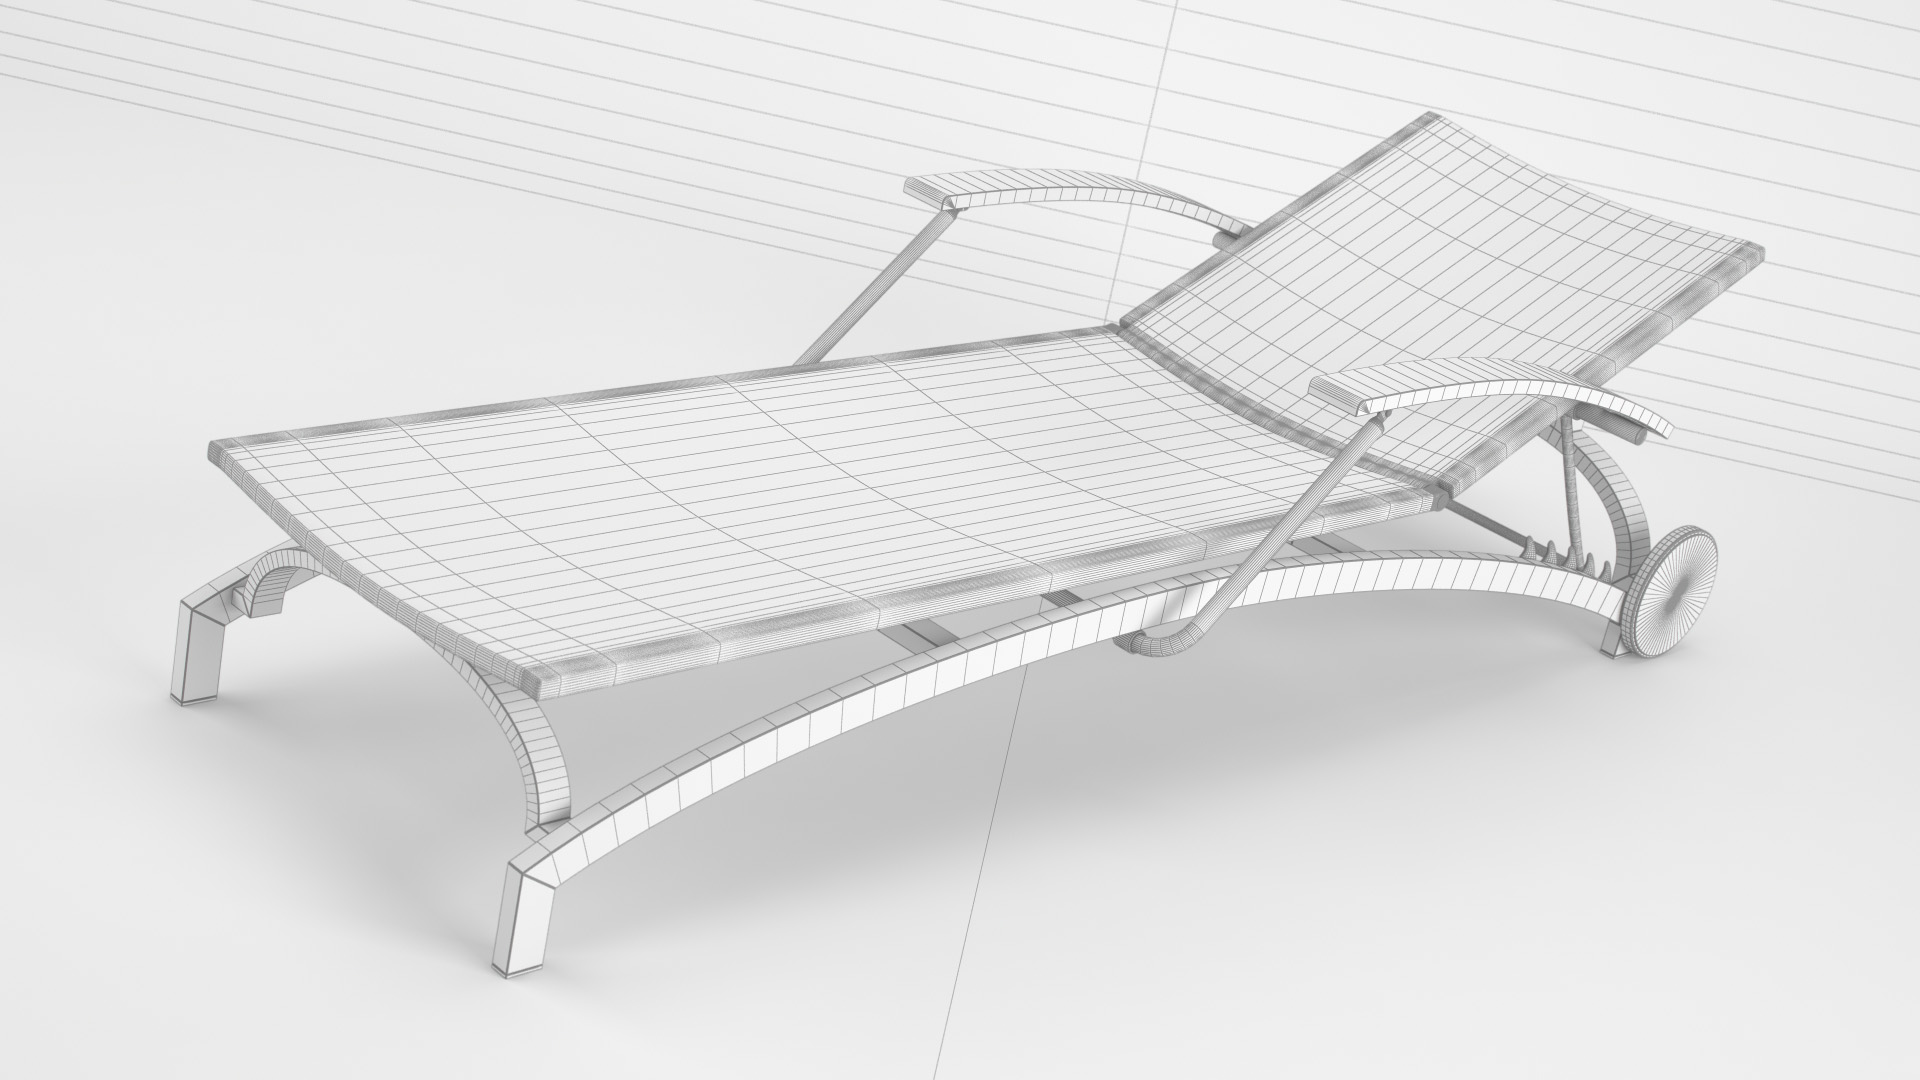 Breeze_Lounger_WhiteSet_01_wire_0003